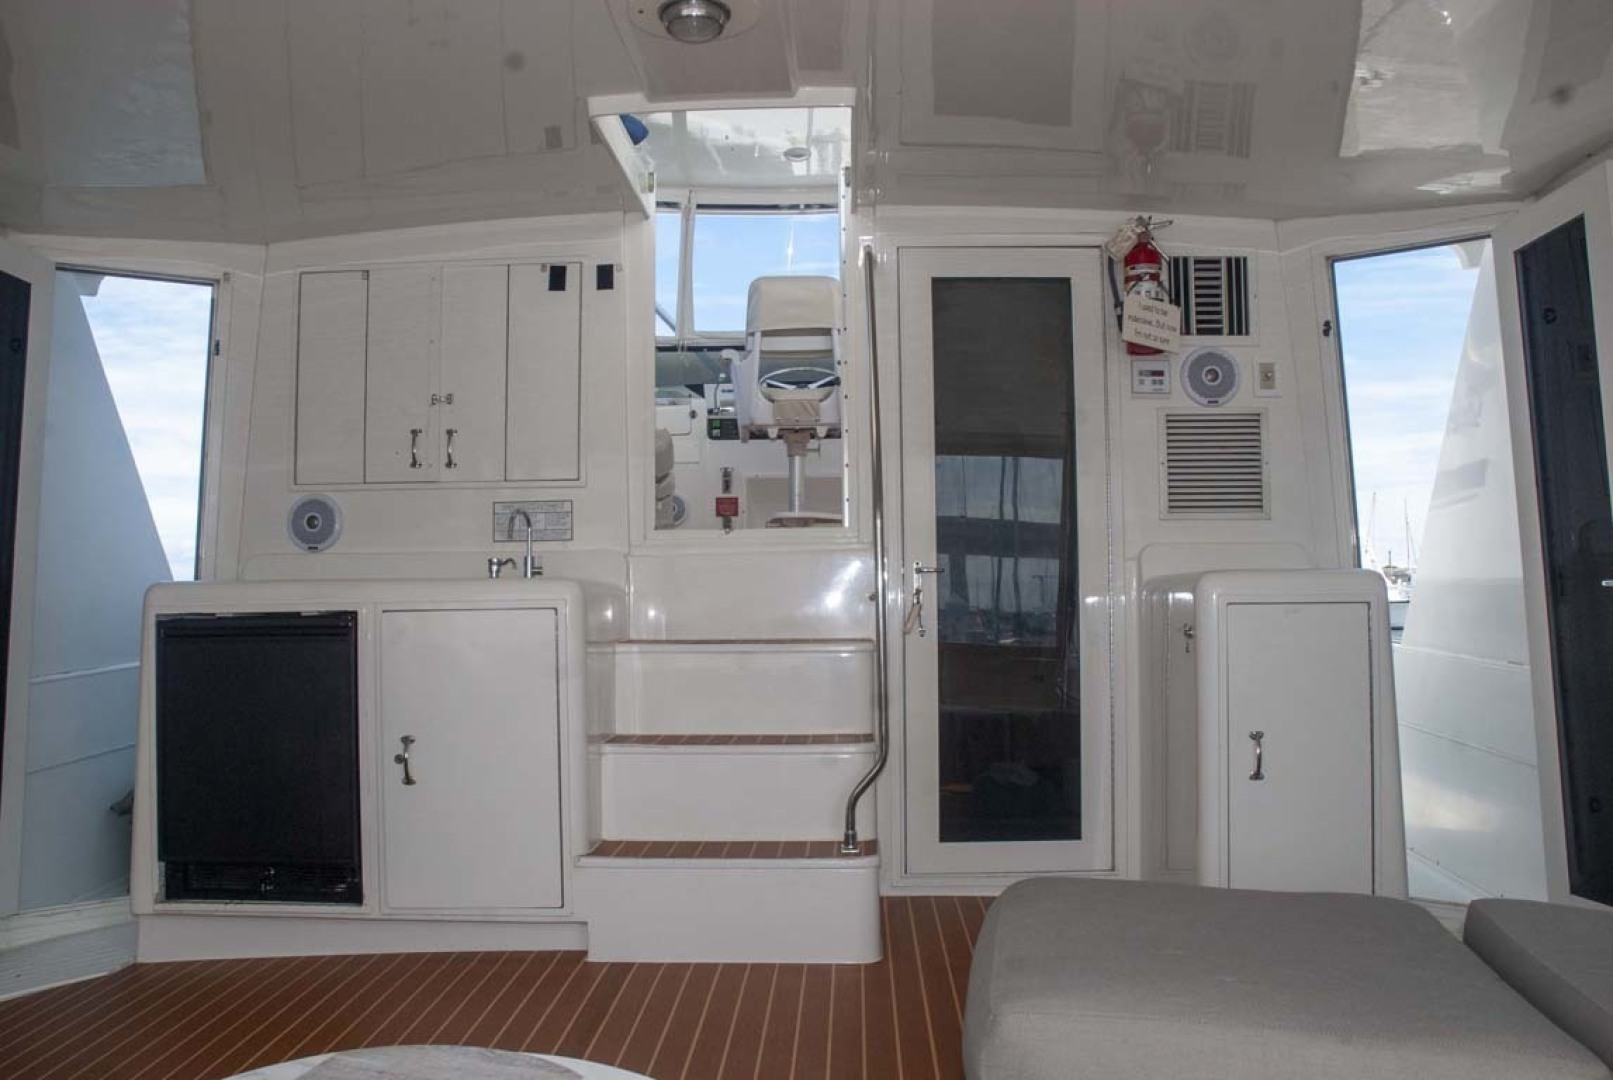 Hatteras-52 Cockpit Motor Yacht 1994-Believe It Mount Pleasant-South Carolina-United States-1415525 | Thumbnail